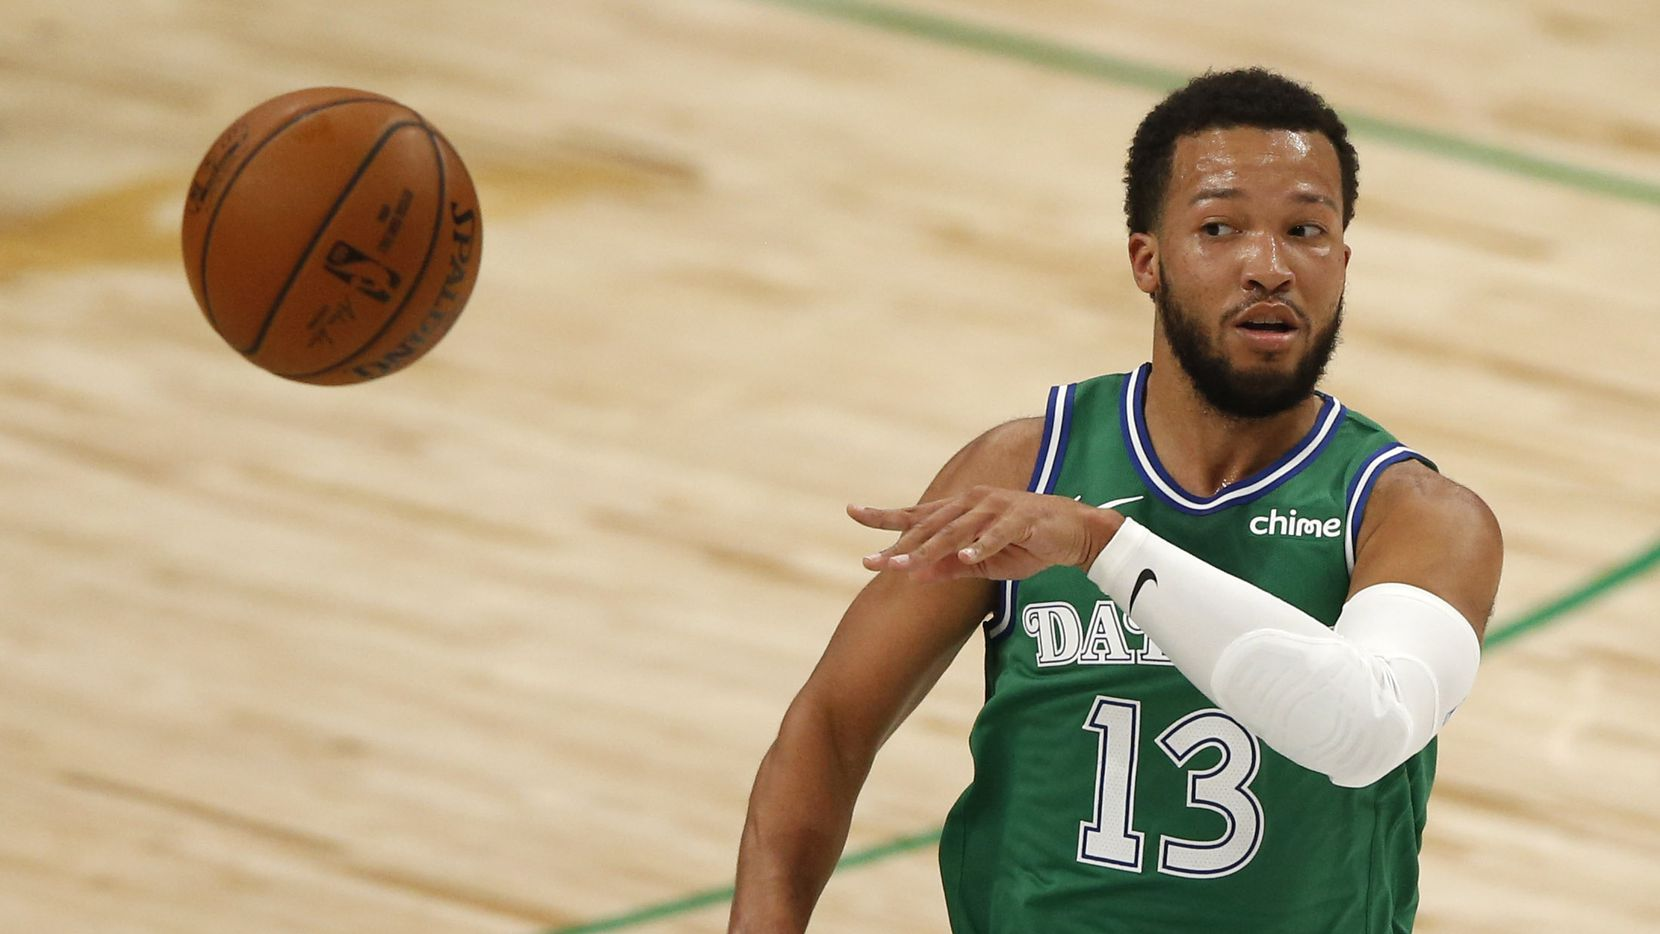 Dallas Mavericks guard Jalen Brunson (13) passes in a game against the Charlotte Hornets during the second quarter of play in the home opener at American Airlines Center on Wednesday, December 30, 2020 in Dallas.